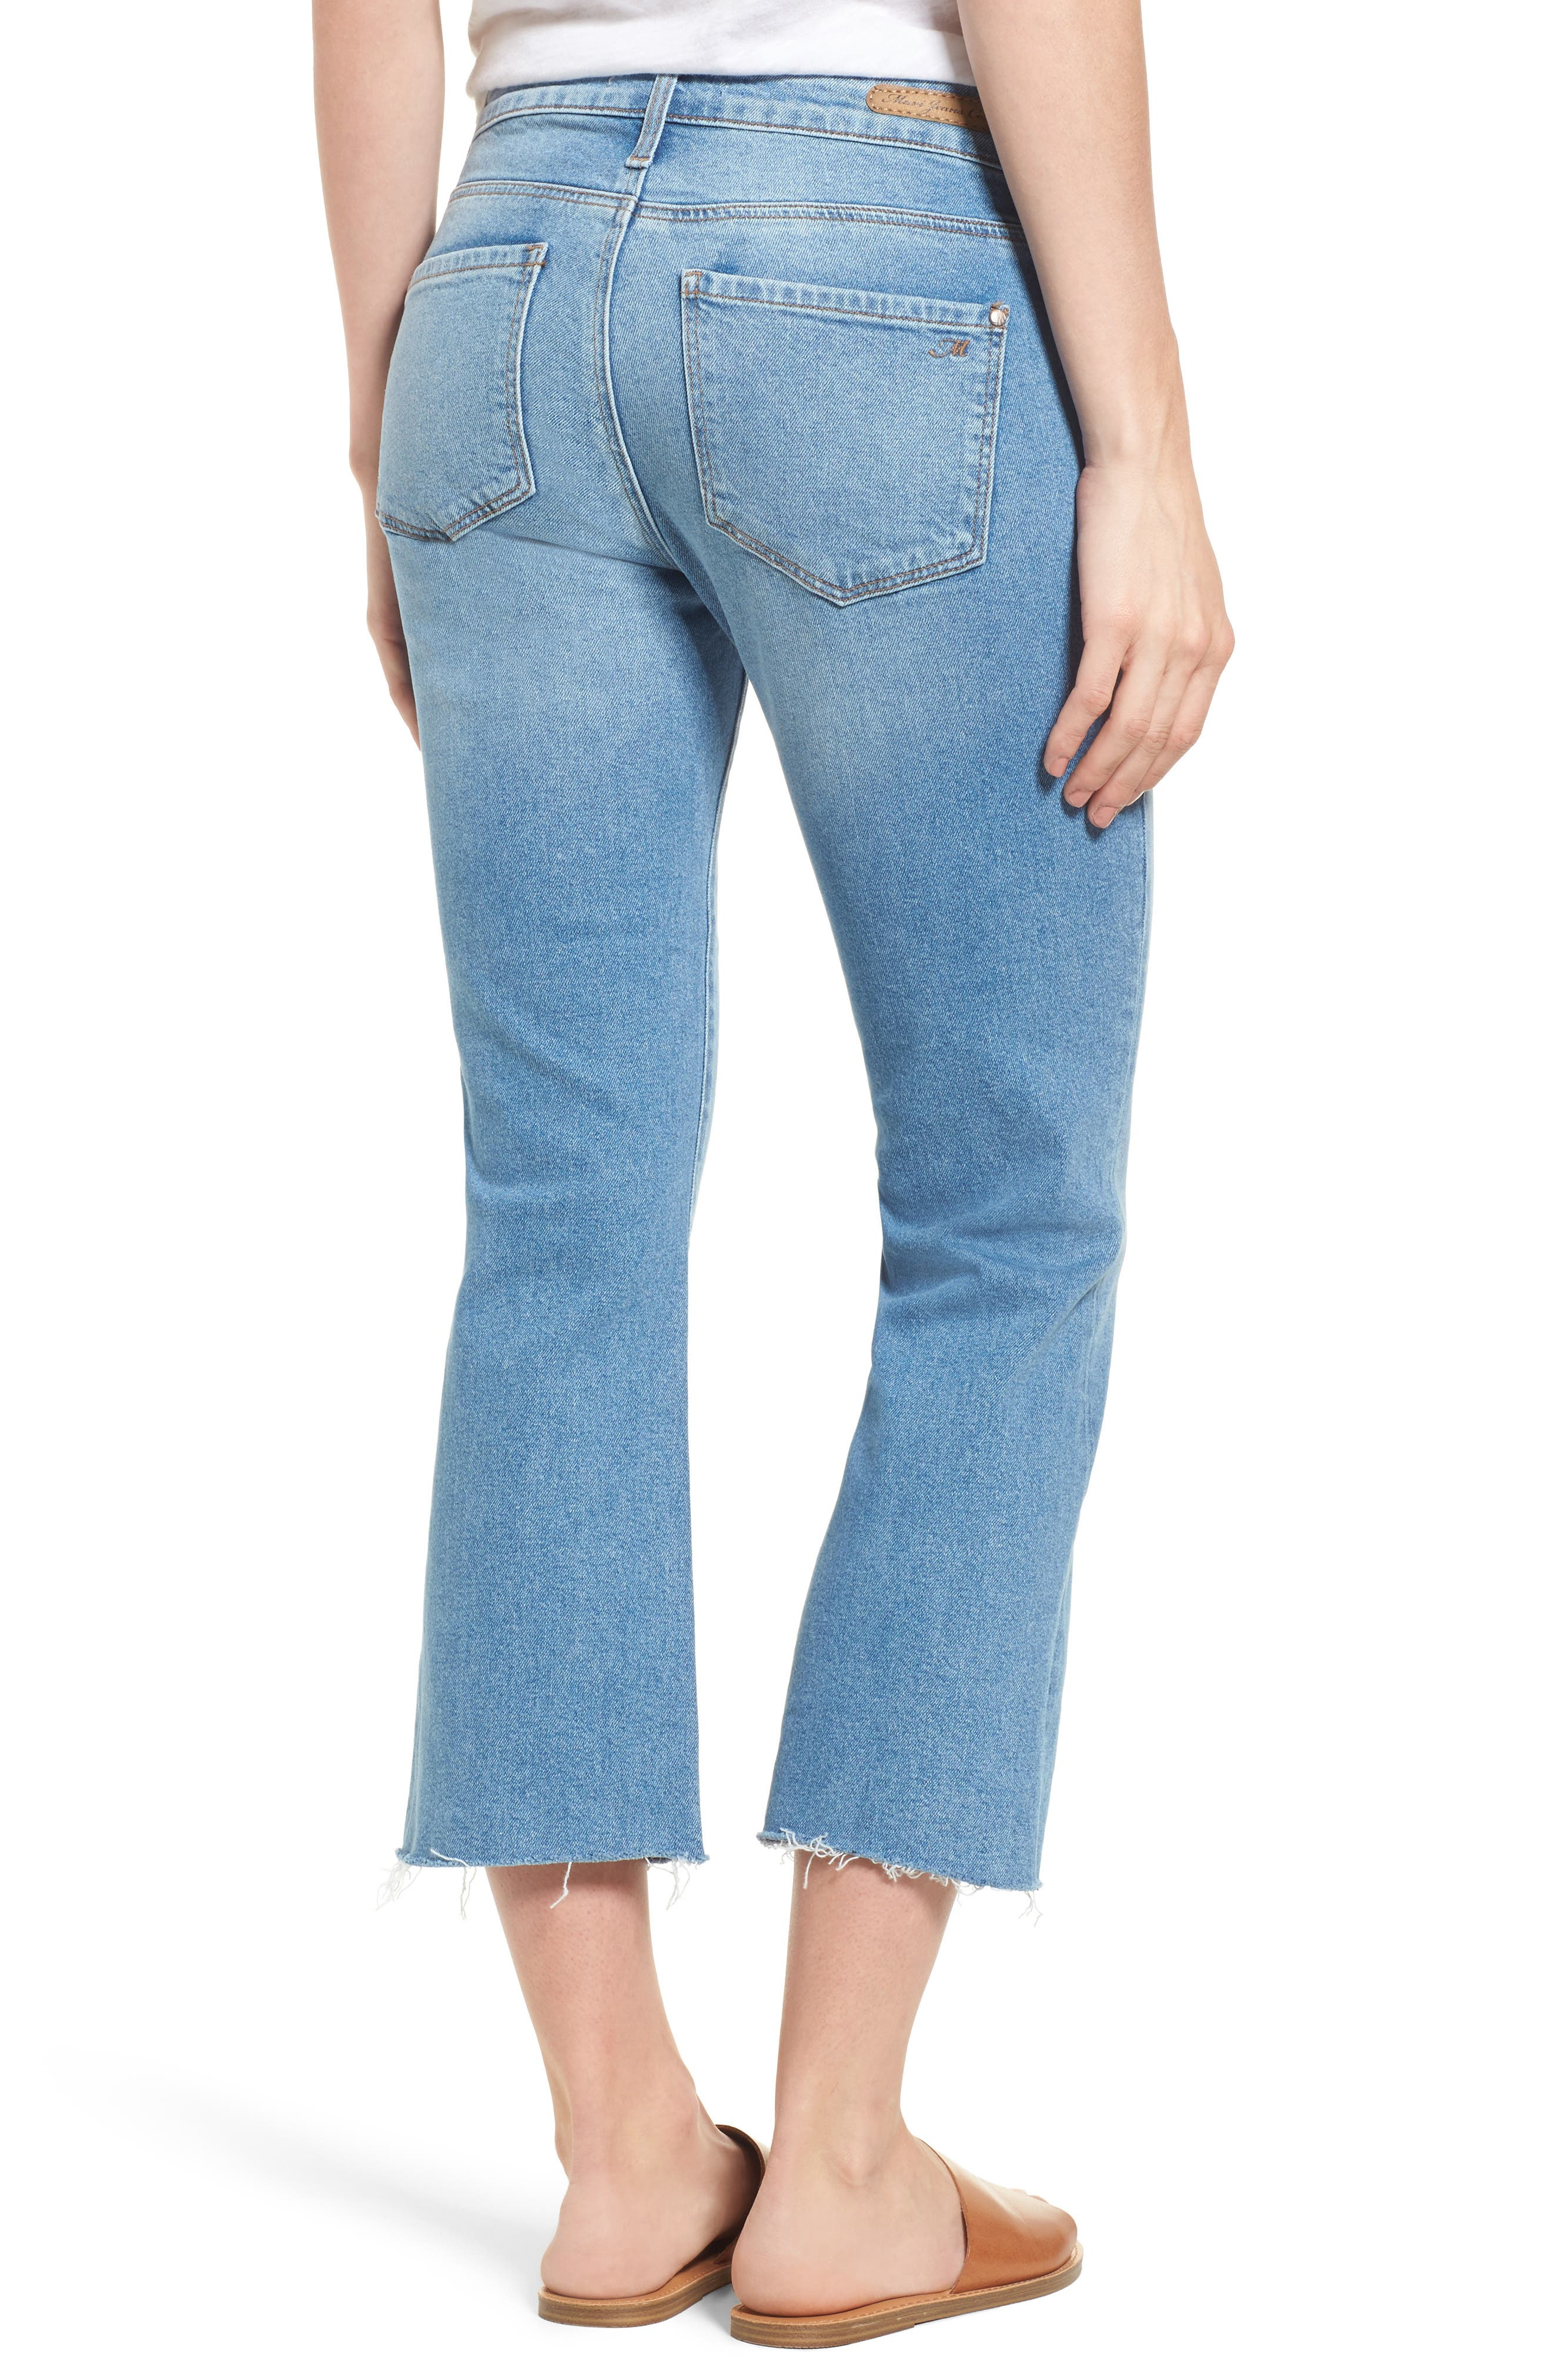 Anika Stretch Crop Jeans,                             Alternate thumbnail 2, color,                             Light Used Retro